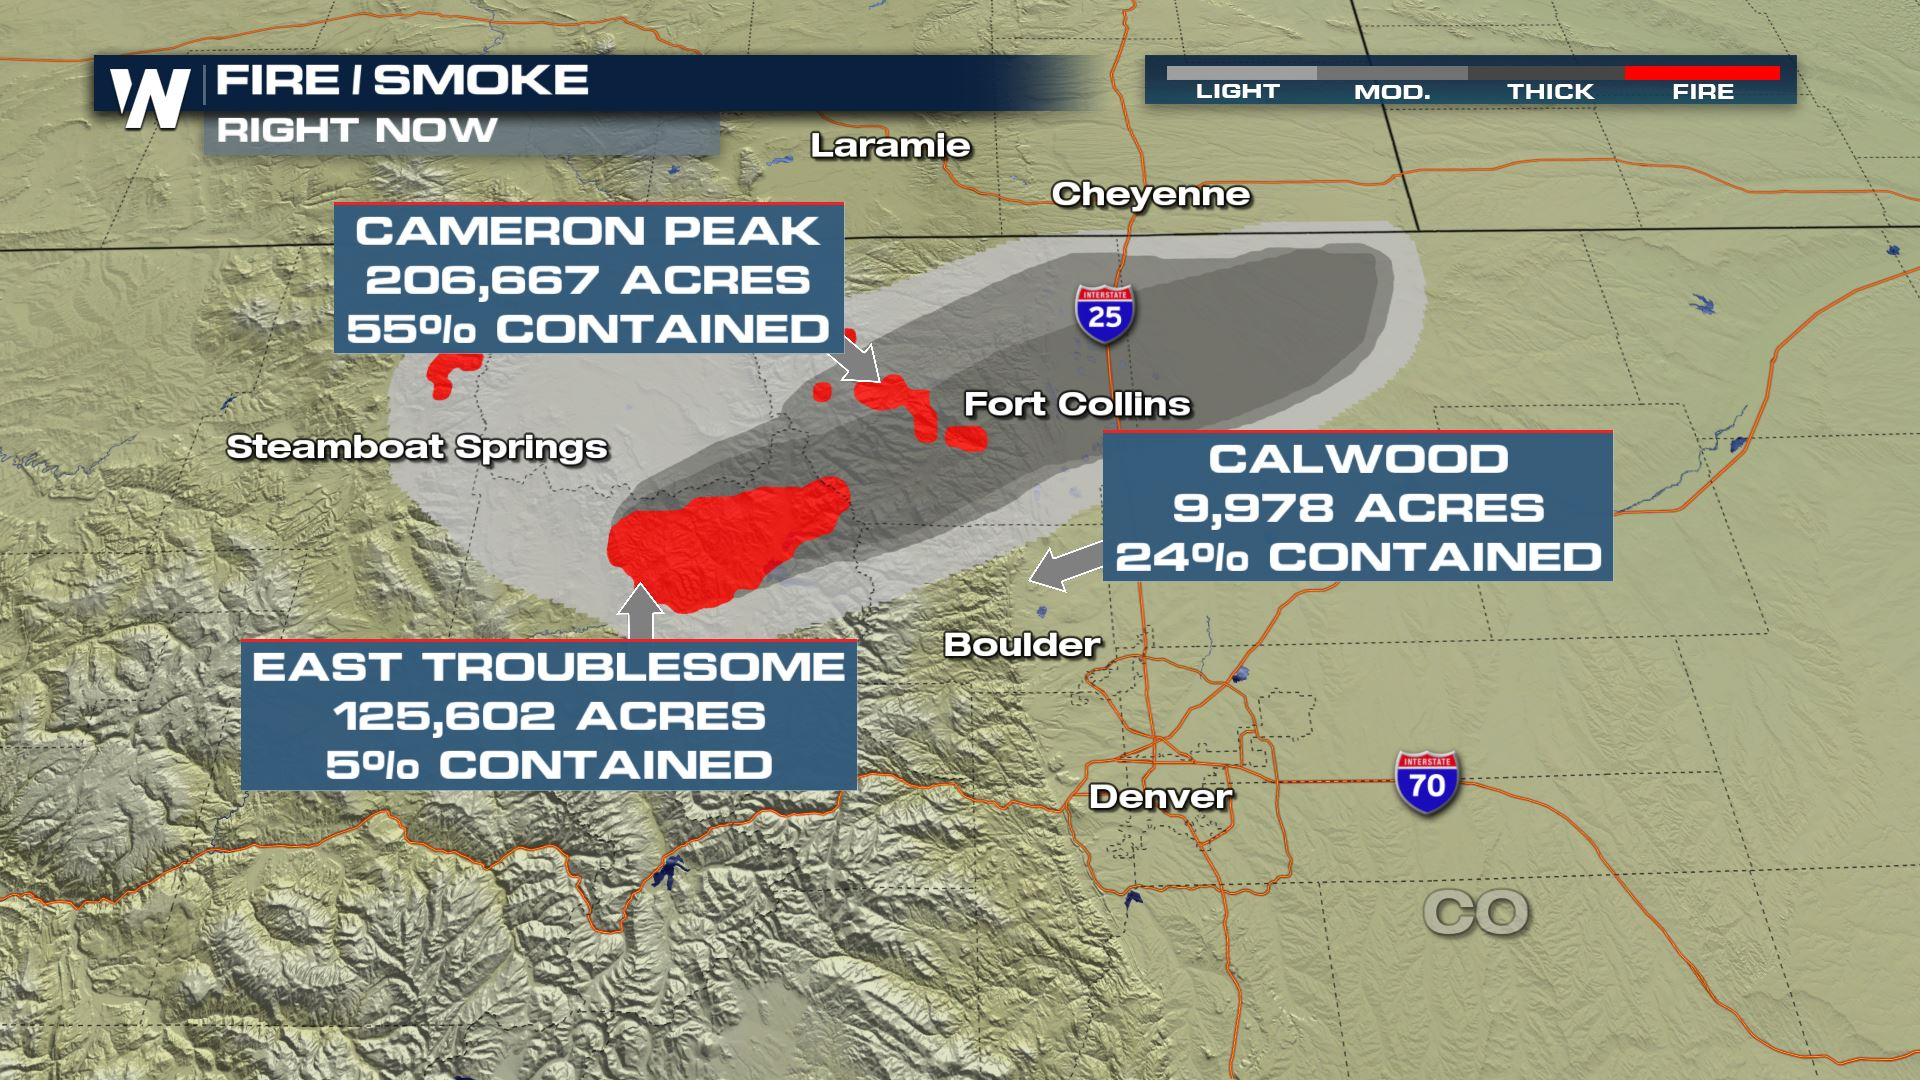 Explosive Growth in Colorado Wildfires, Some Relief Possible this Weekend